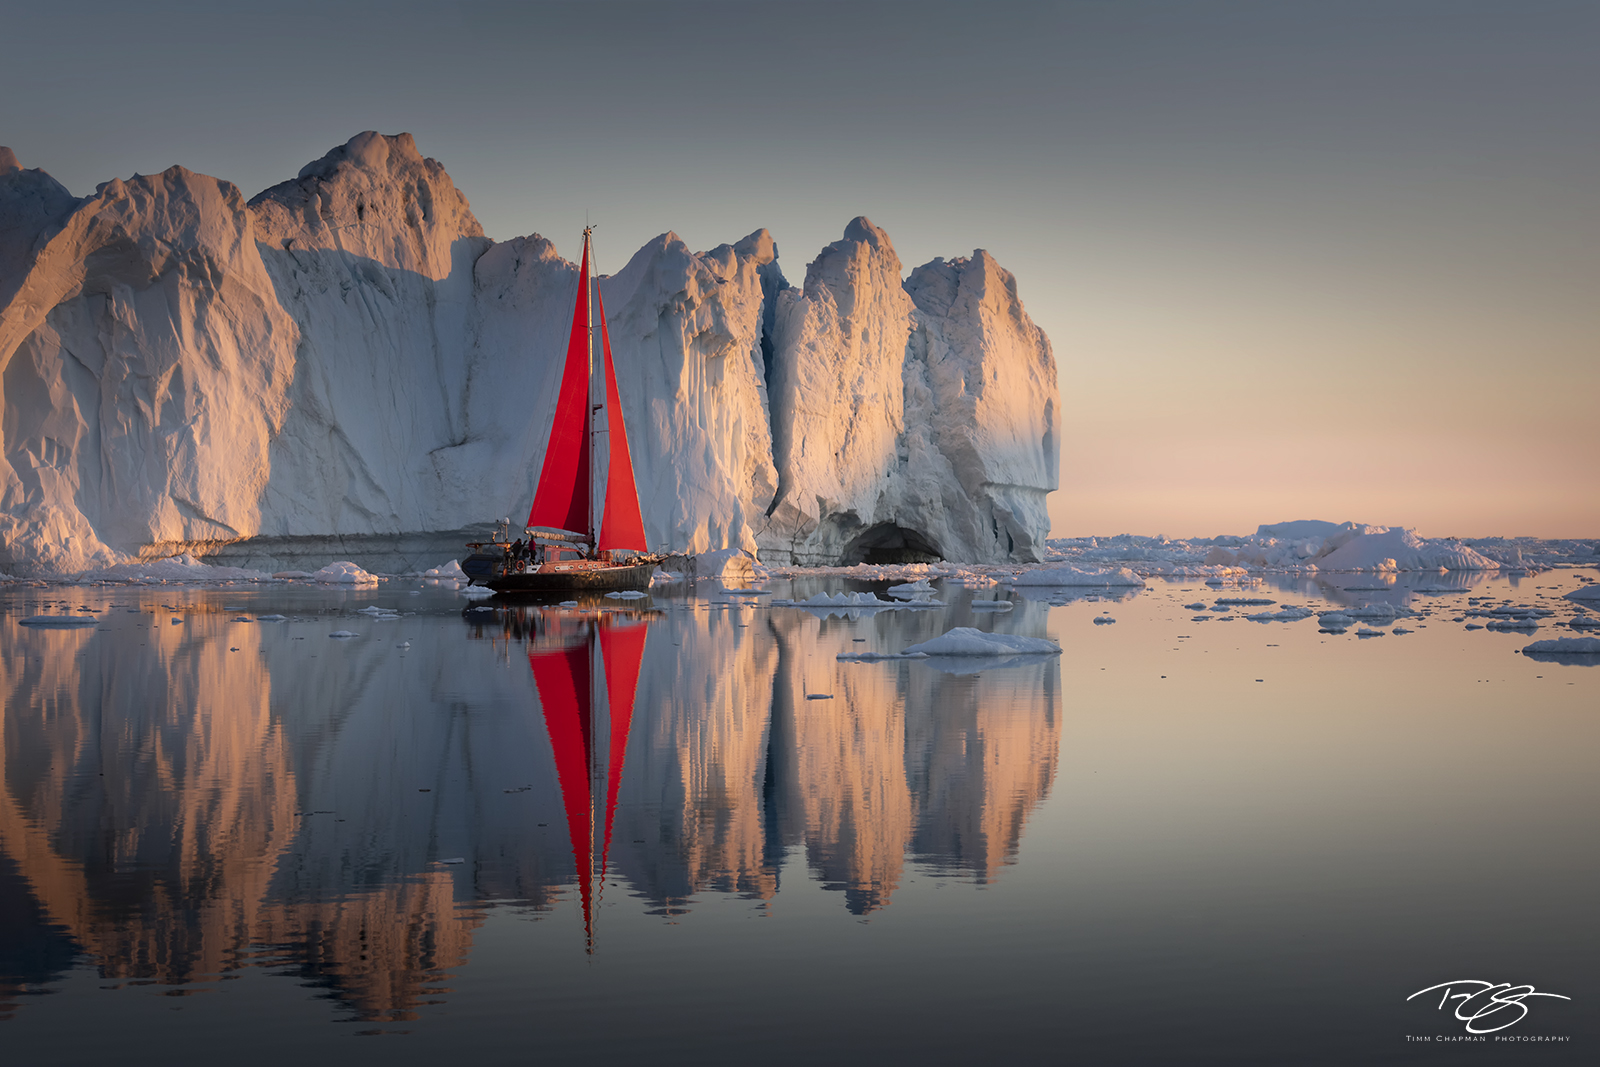 A sailboat slices through the silence of the Kangia Icefjord in Greenland